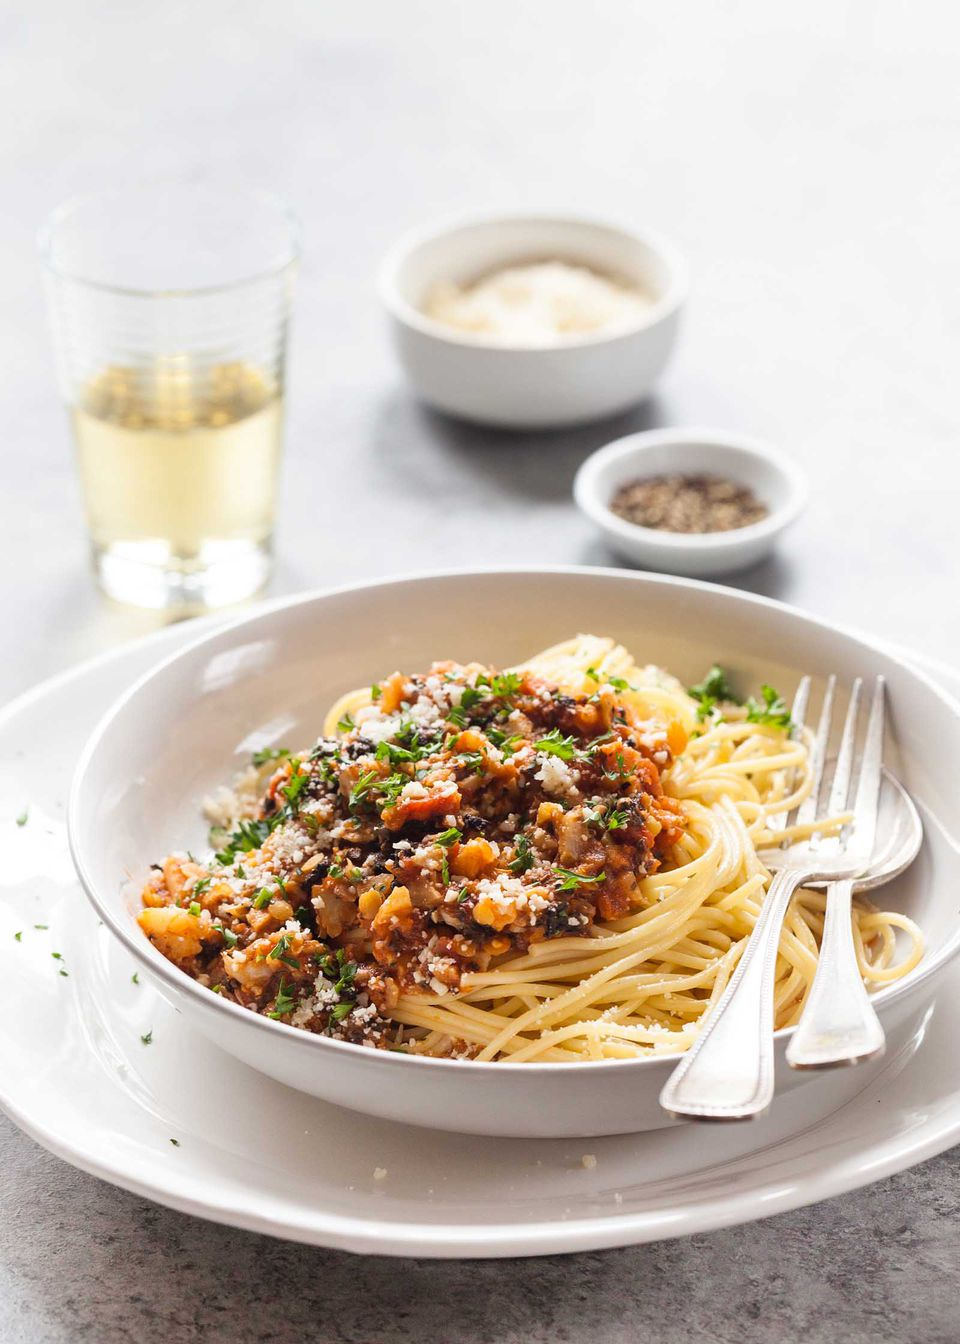 Cauliflower Bolognese in a bowl with spaghetti and silverware. A plate is under the bowl. A drink, grated parmesan and ground pepper are behind it.